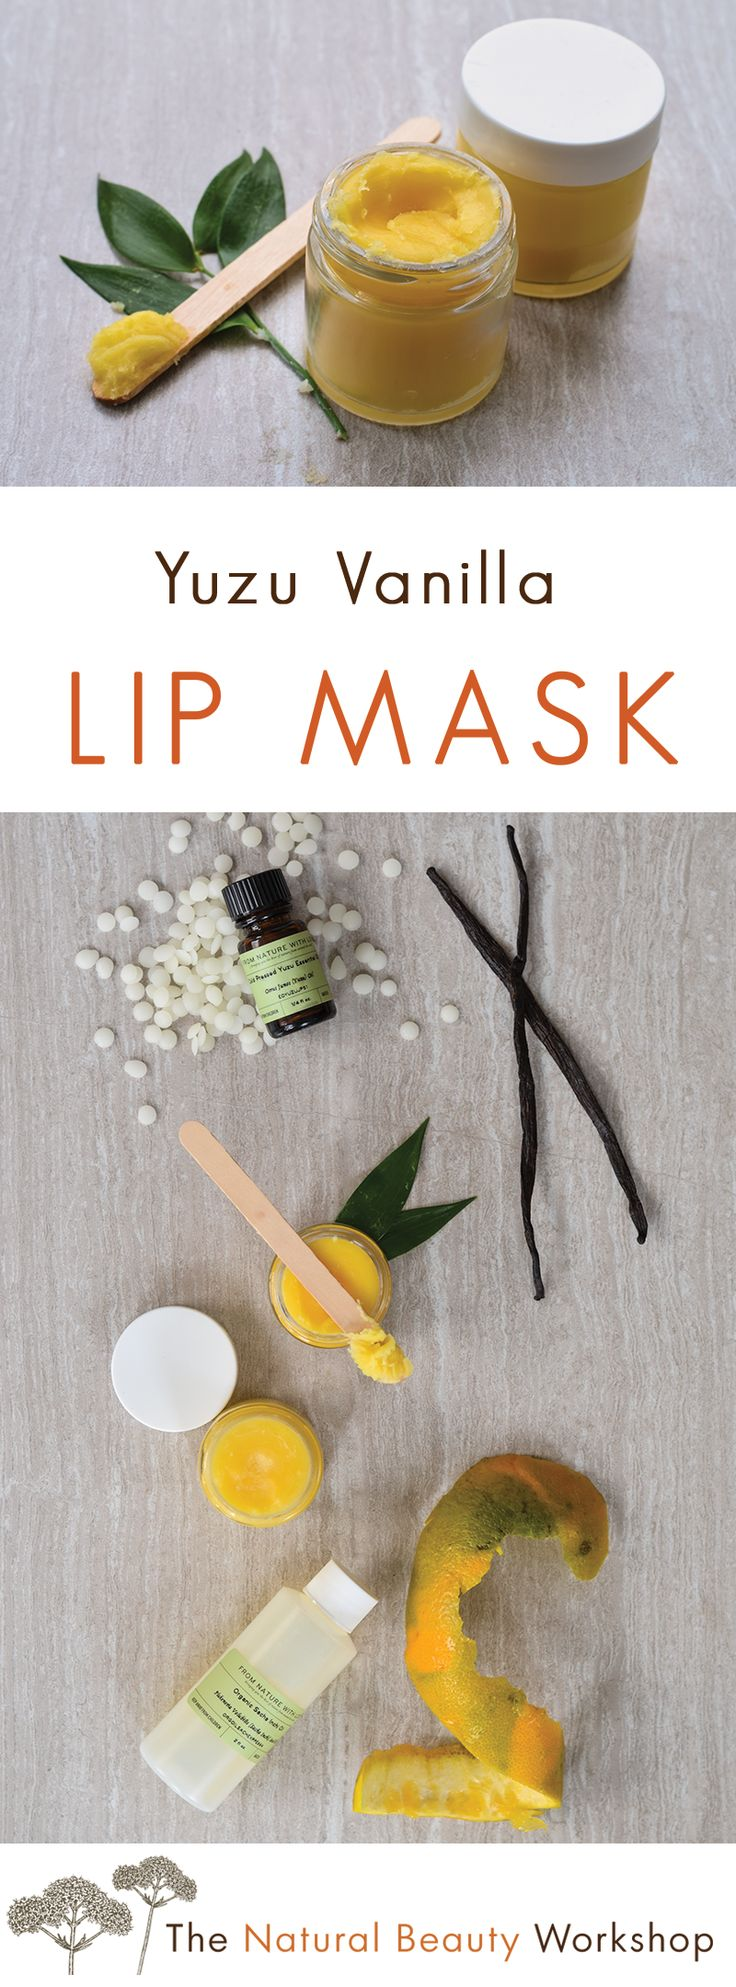 217 Best Diy Beauty Recipes Images On Pinterest Hacks Lavender Cream Vanilla Mandarin Lip Hydrate Make Your Own Yuzu Mask An Ultra Hydrating Balm For Very Dry Lips